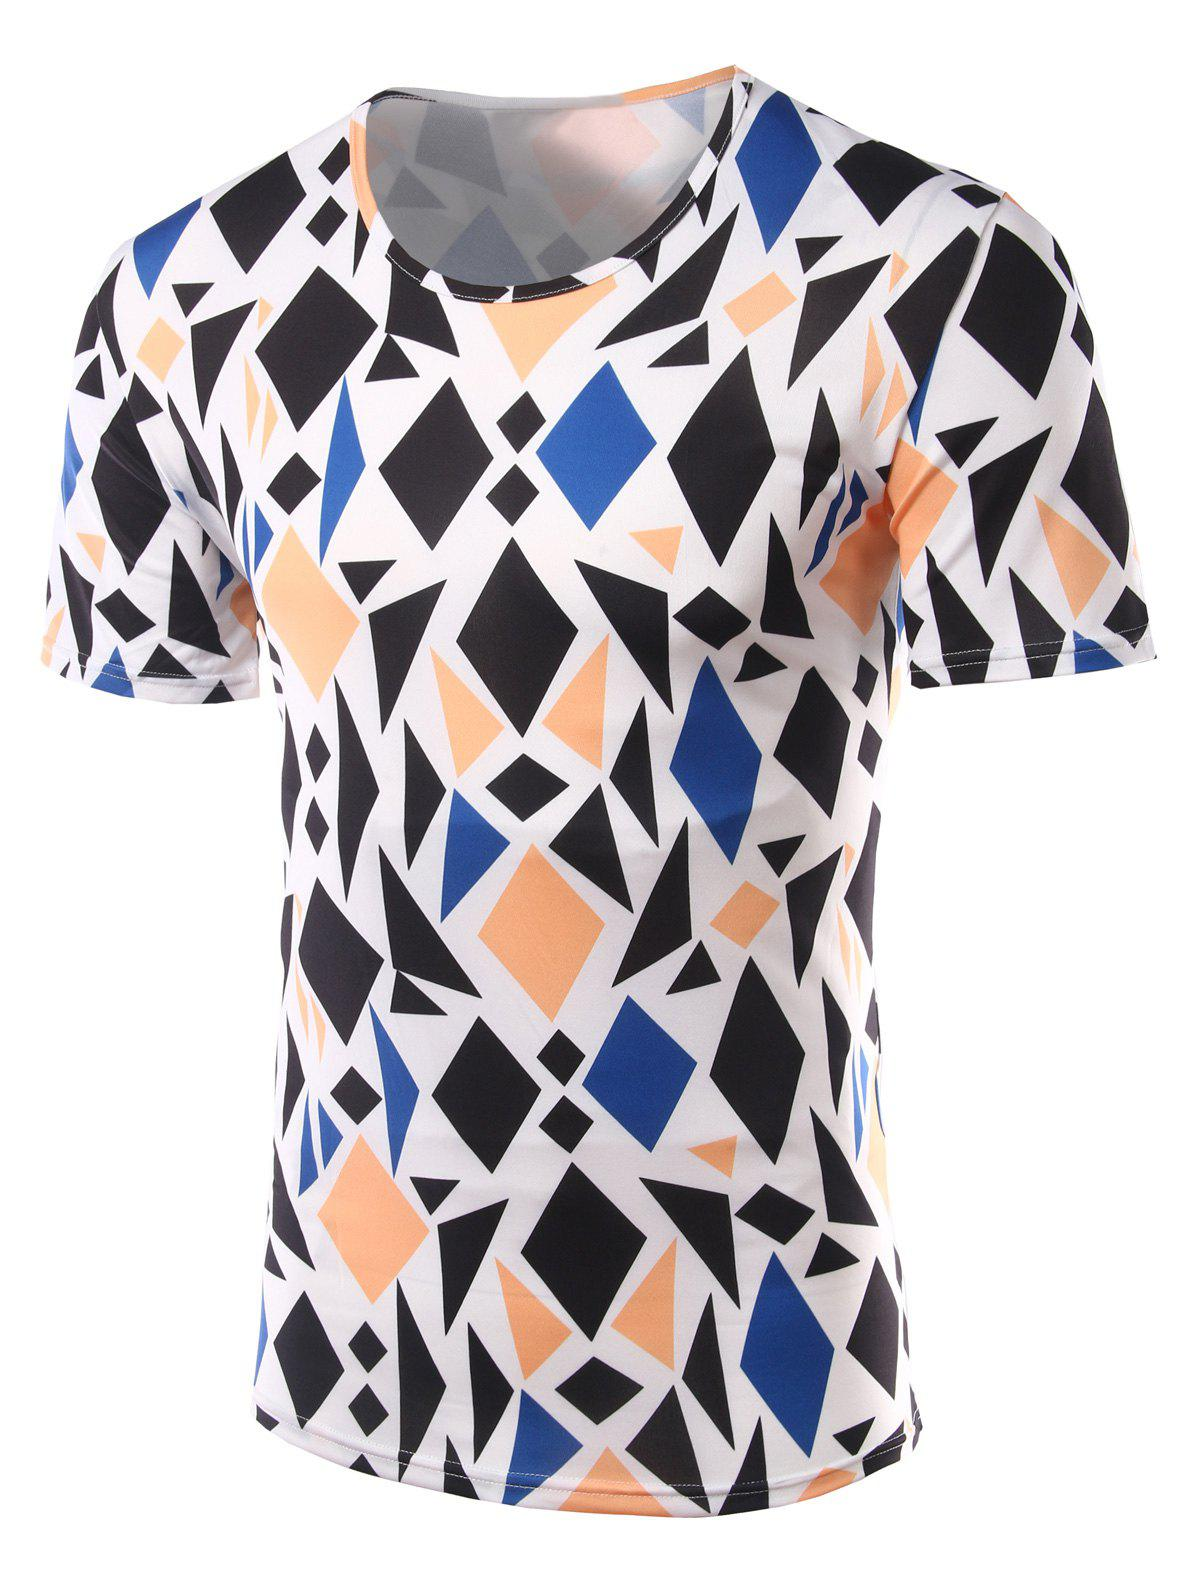 Slim Fit Geometric Figure Printed Round Collar Short Sleeves T-Shirts For Men - 2XL COLORMIX